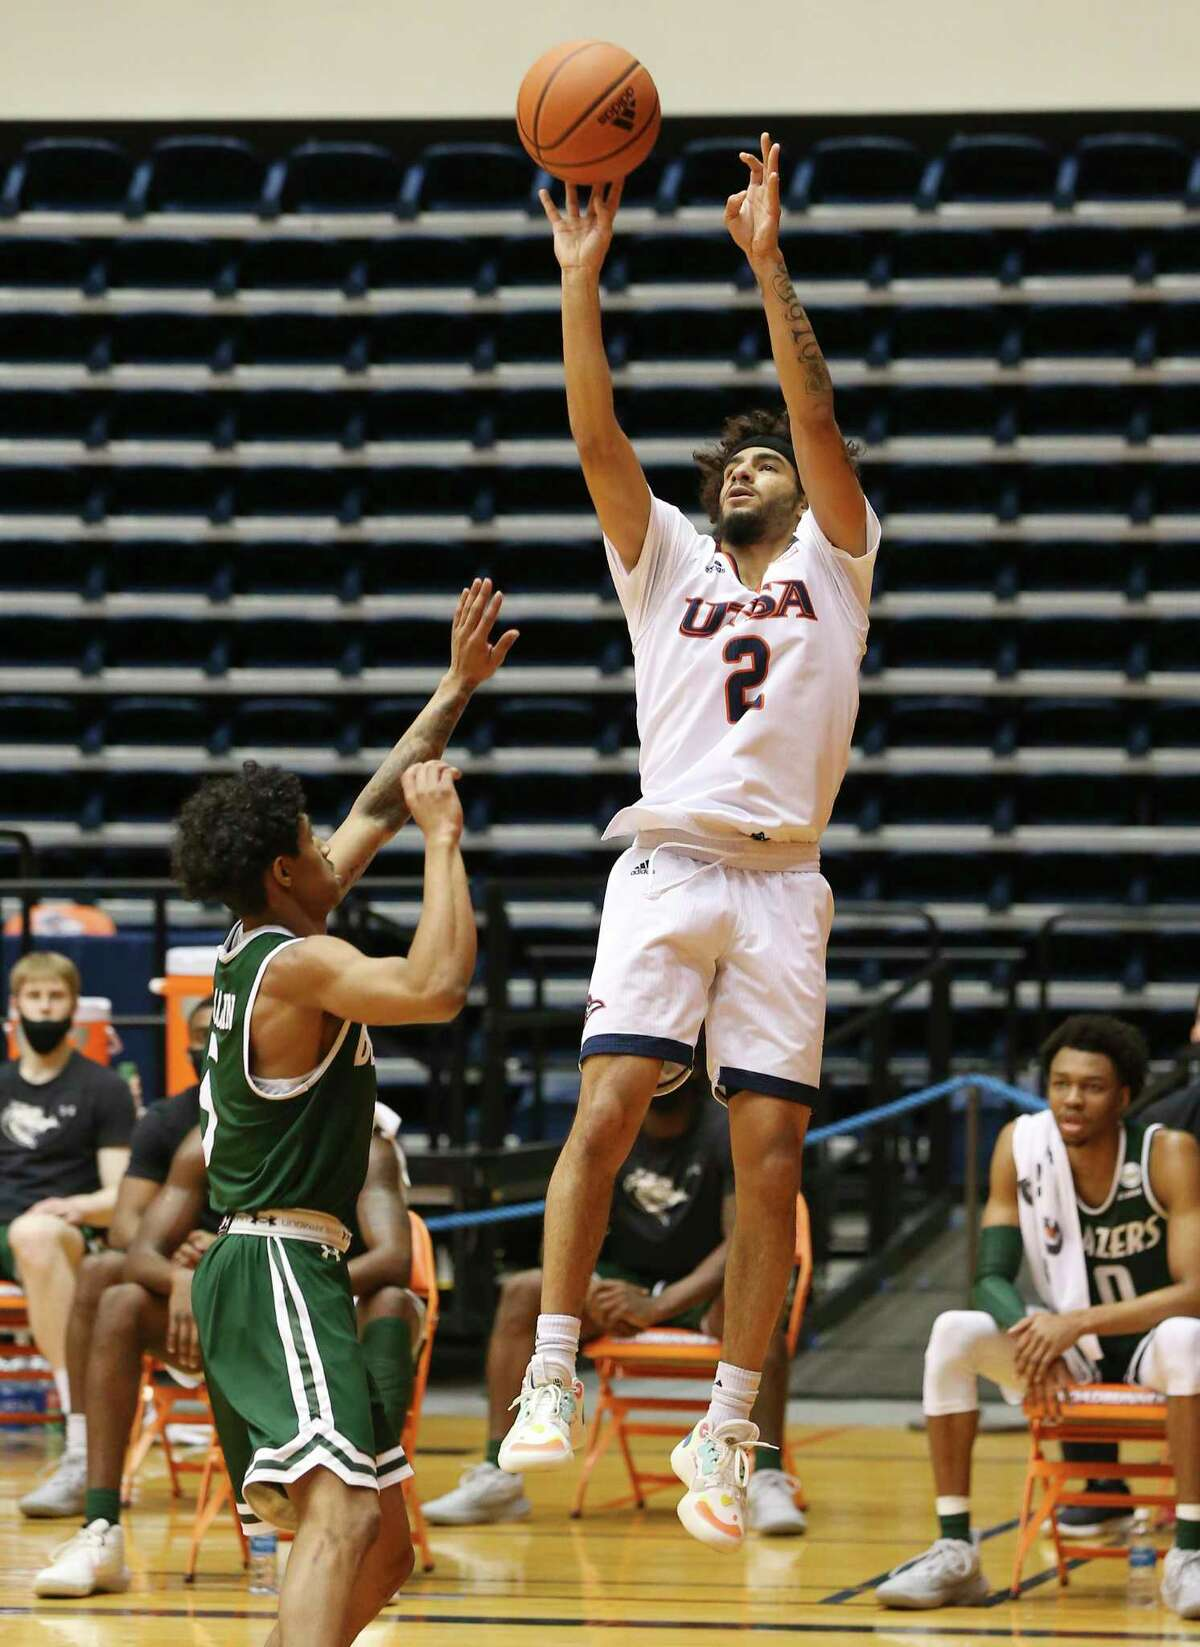 UTSA's Jhivvan Jackson (02) shoots over University of Alabama Birmingham's Jalen Benjamin (05) during men's basketball at the Convocation Center on Friday, Feb. 26, 2021. UTSA goes down, 57-64, to UAB and will play again on Saturday.